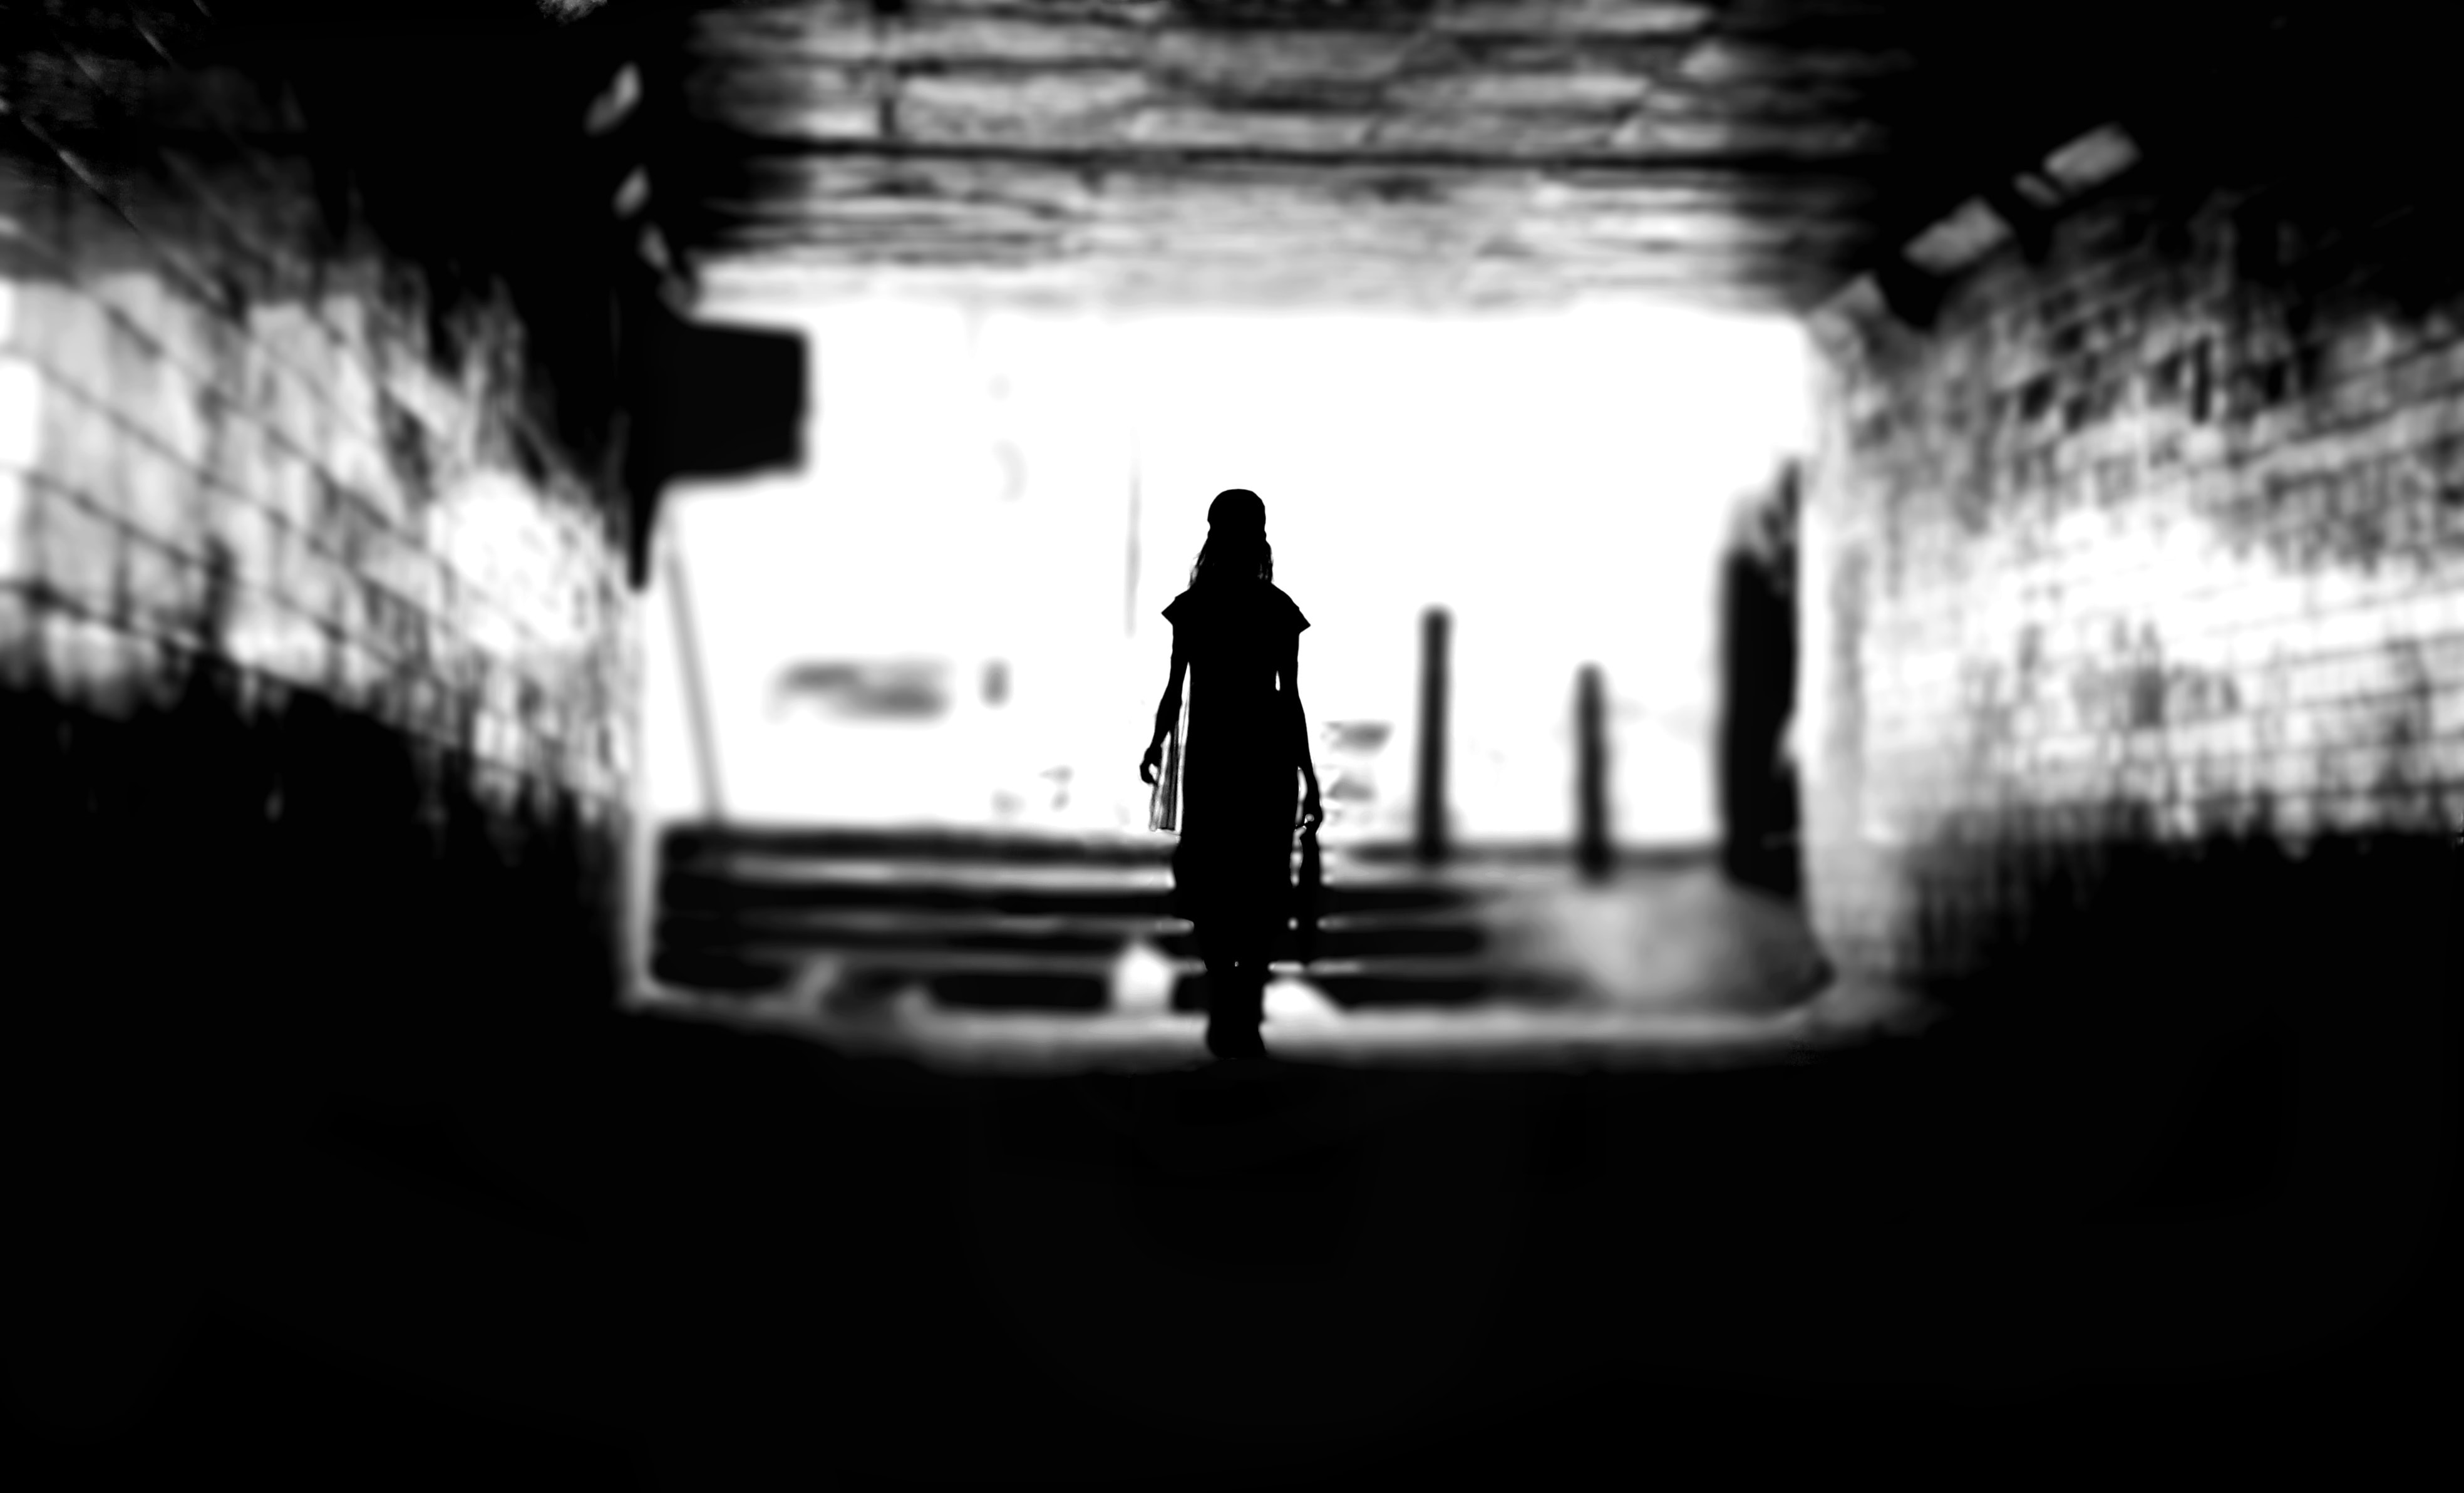 Black and white shot of lone woman silhouette walking through brick wall tunnel, Dadar